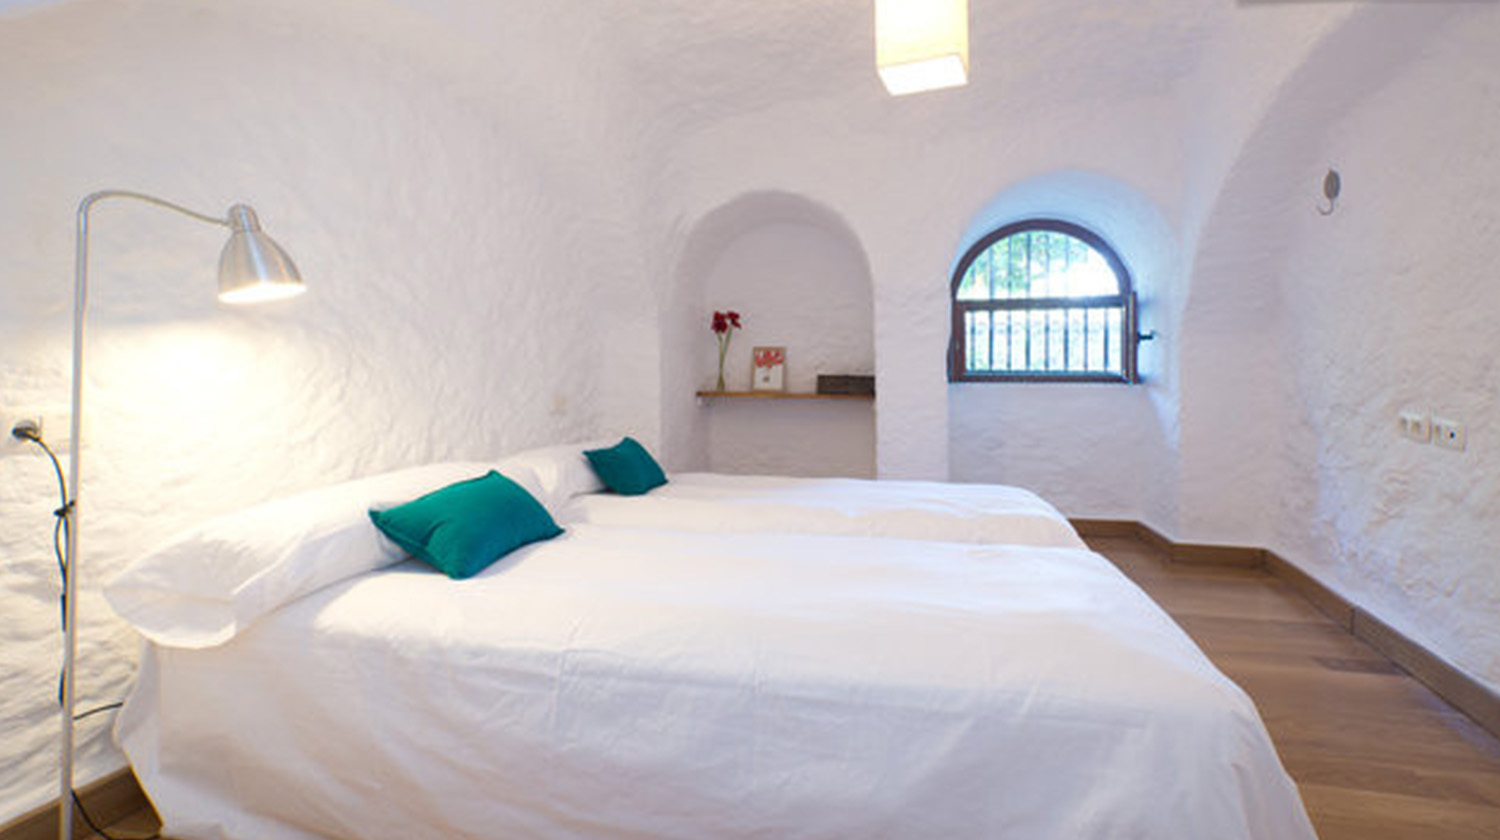 Cave bedroom in Sacromente